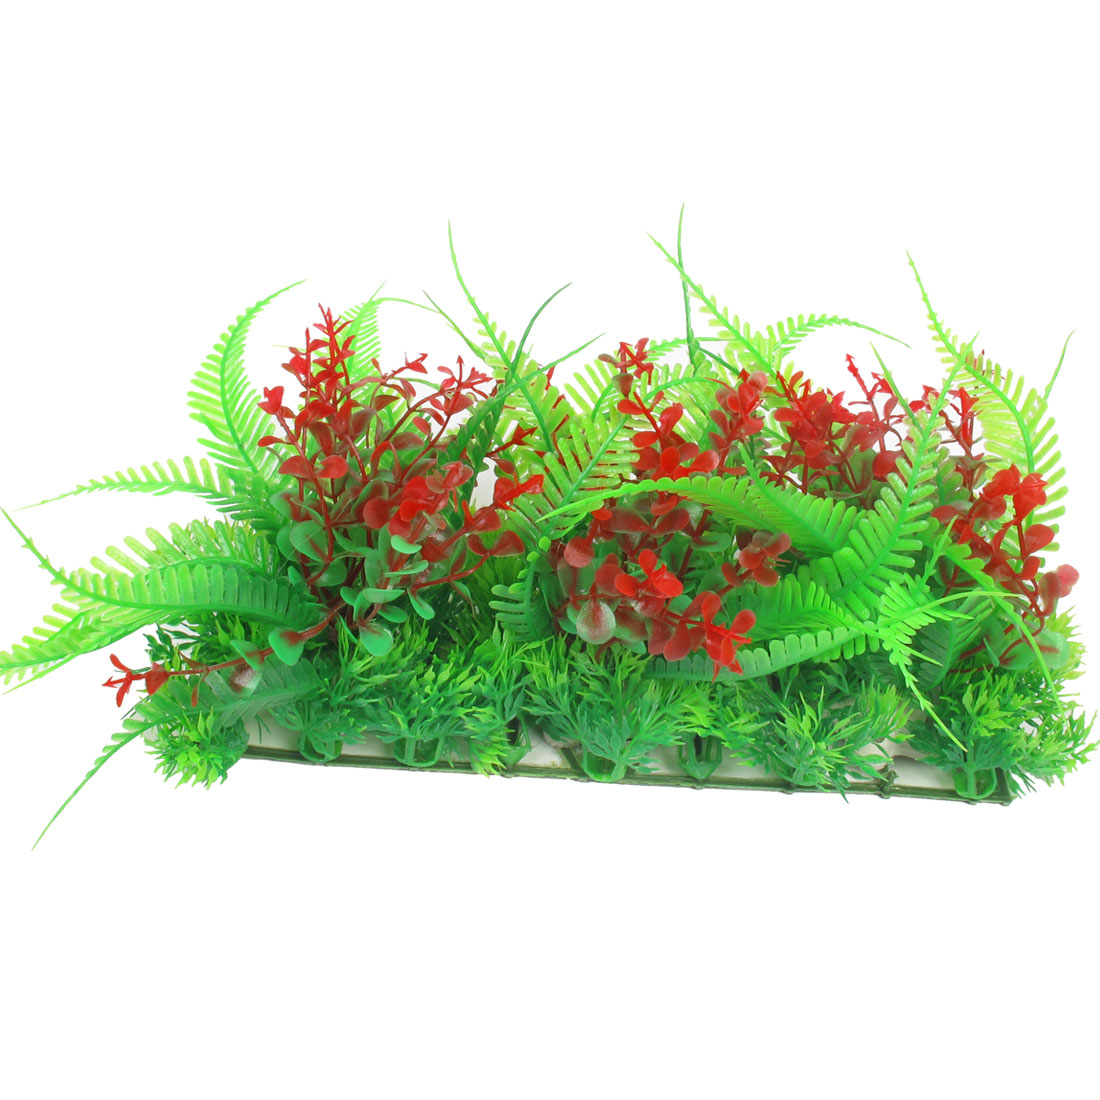 Fish Tank Landscaping Ceramic Base Water Plant Grass Red Green 7.1""